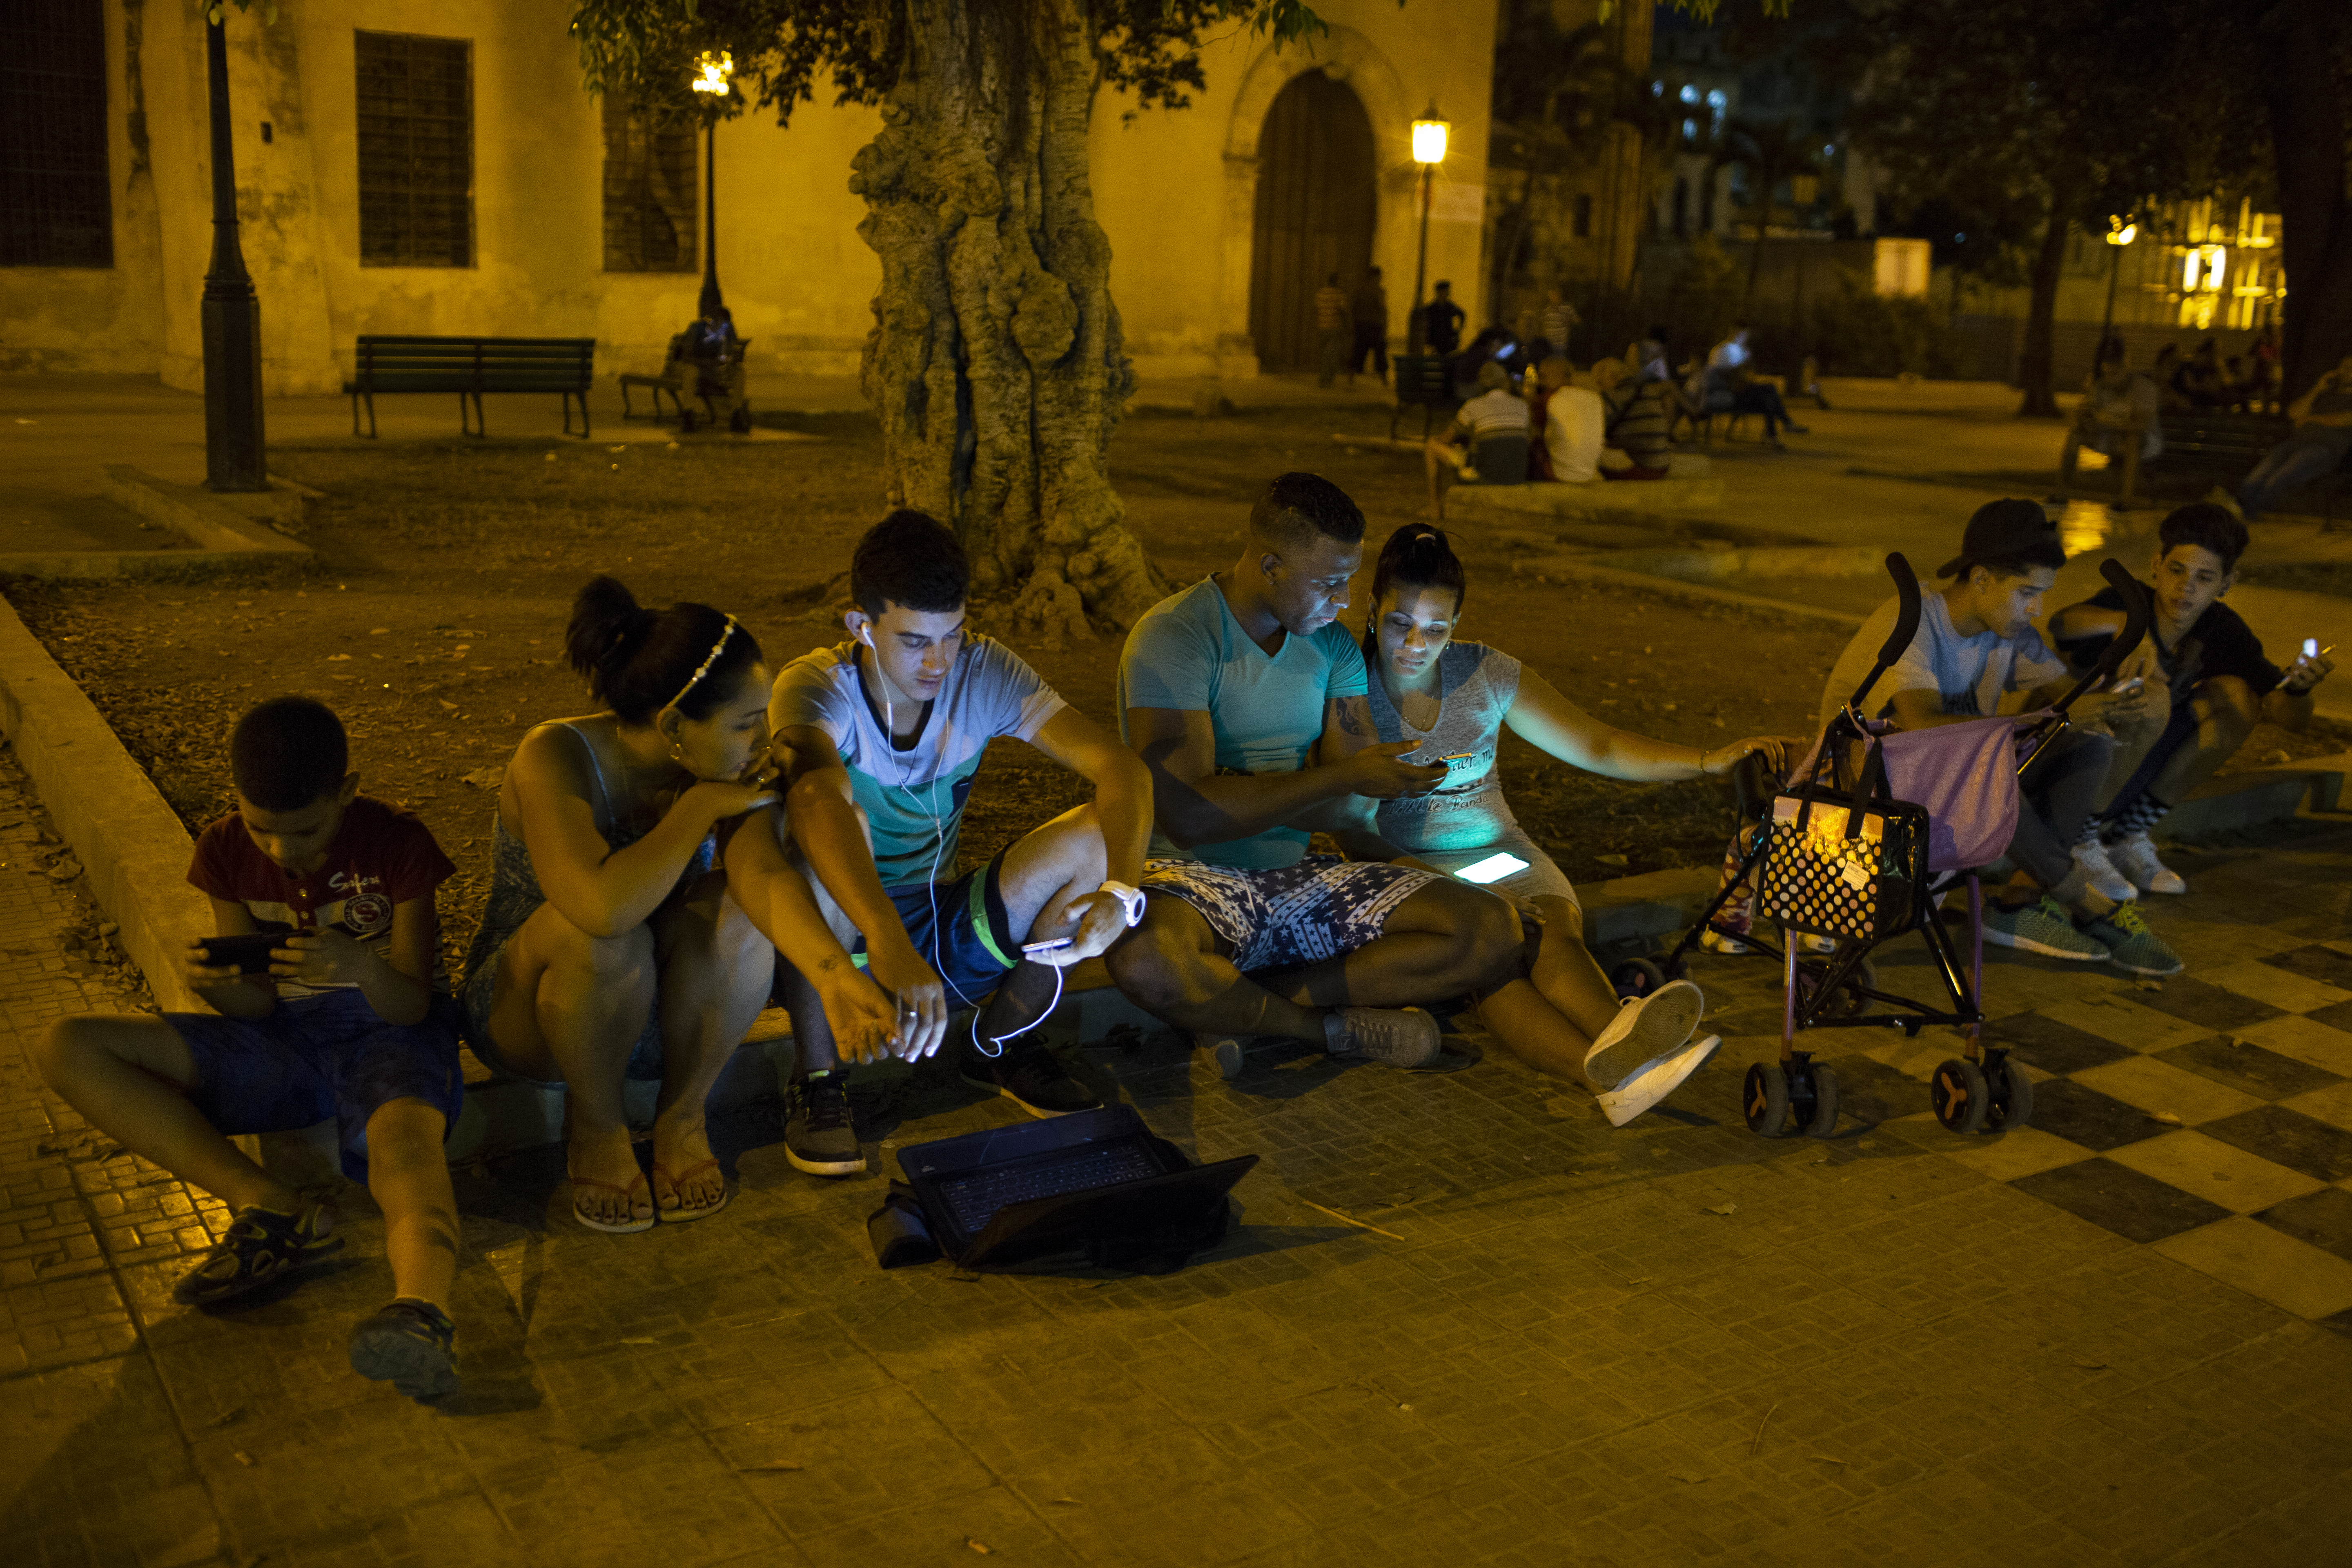 Cuba: searching for wifi